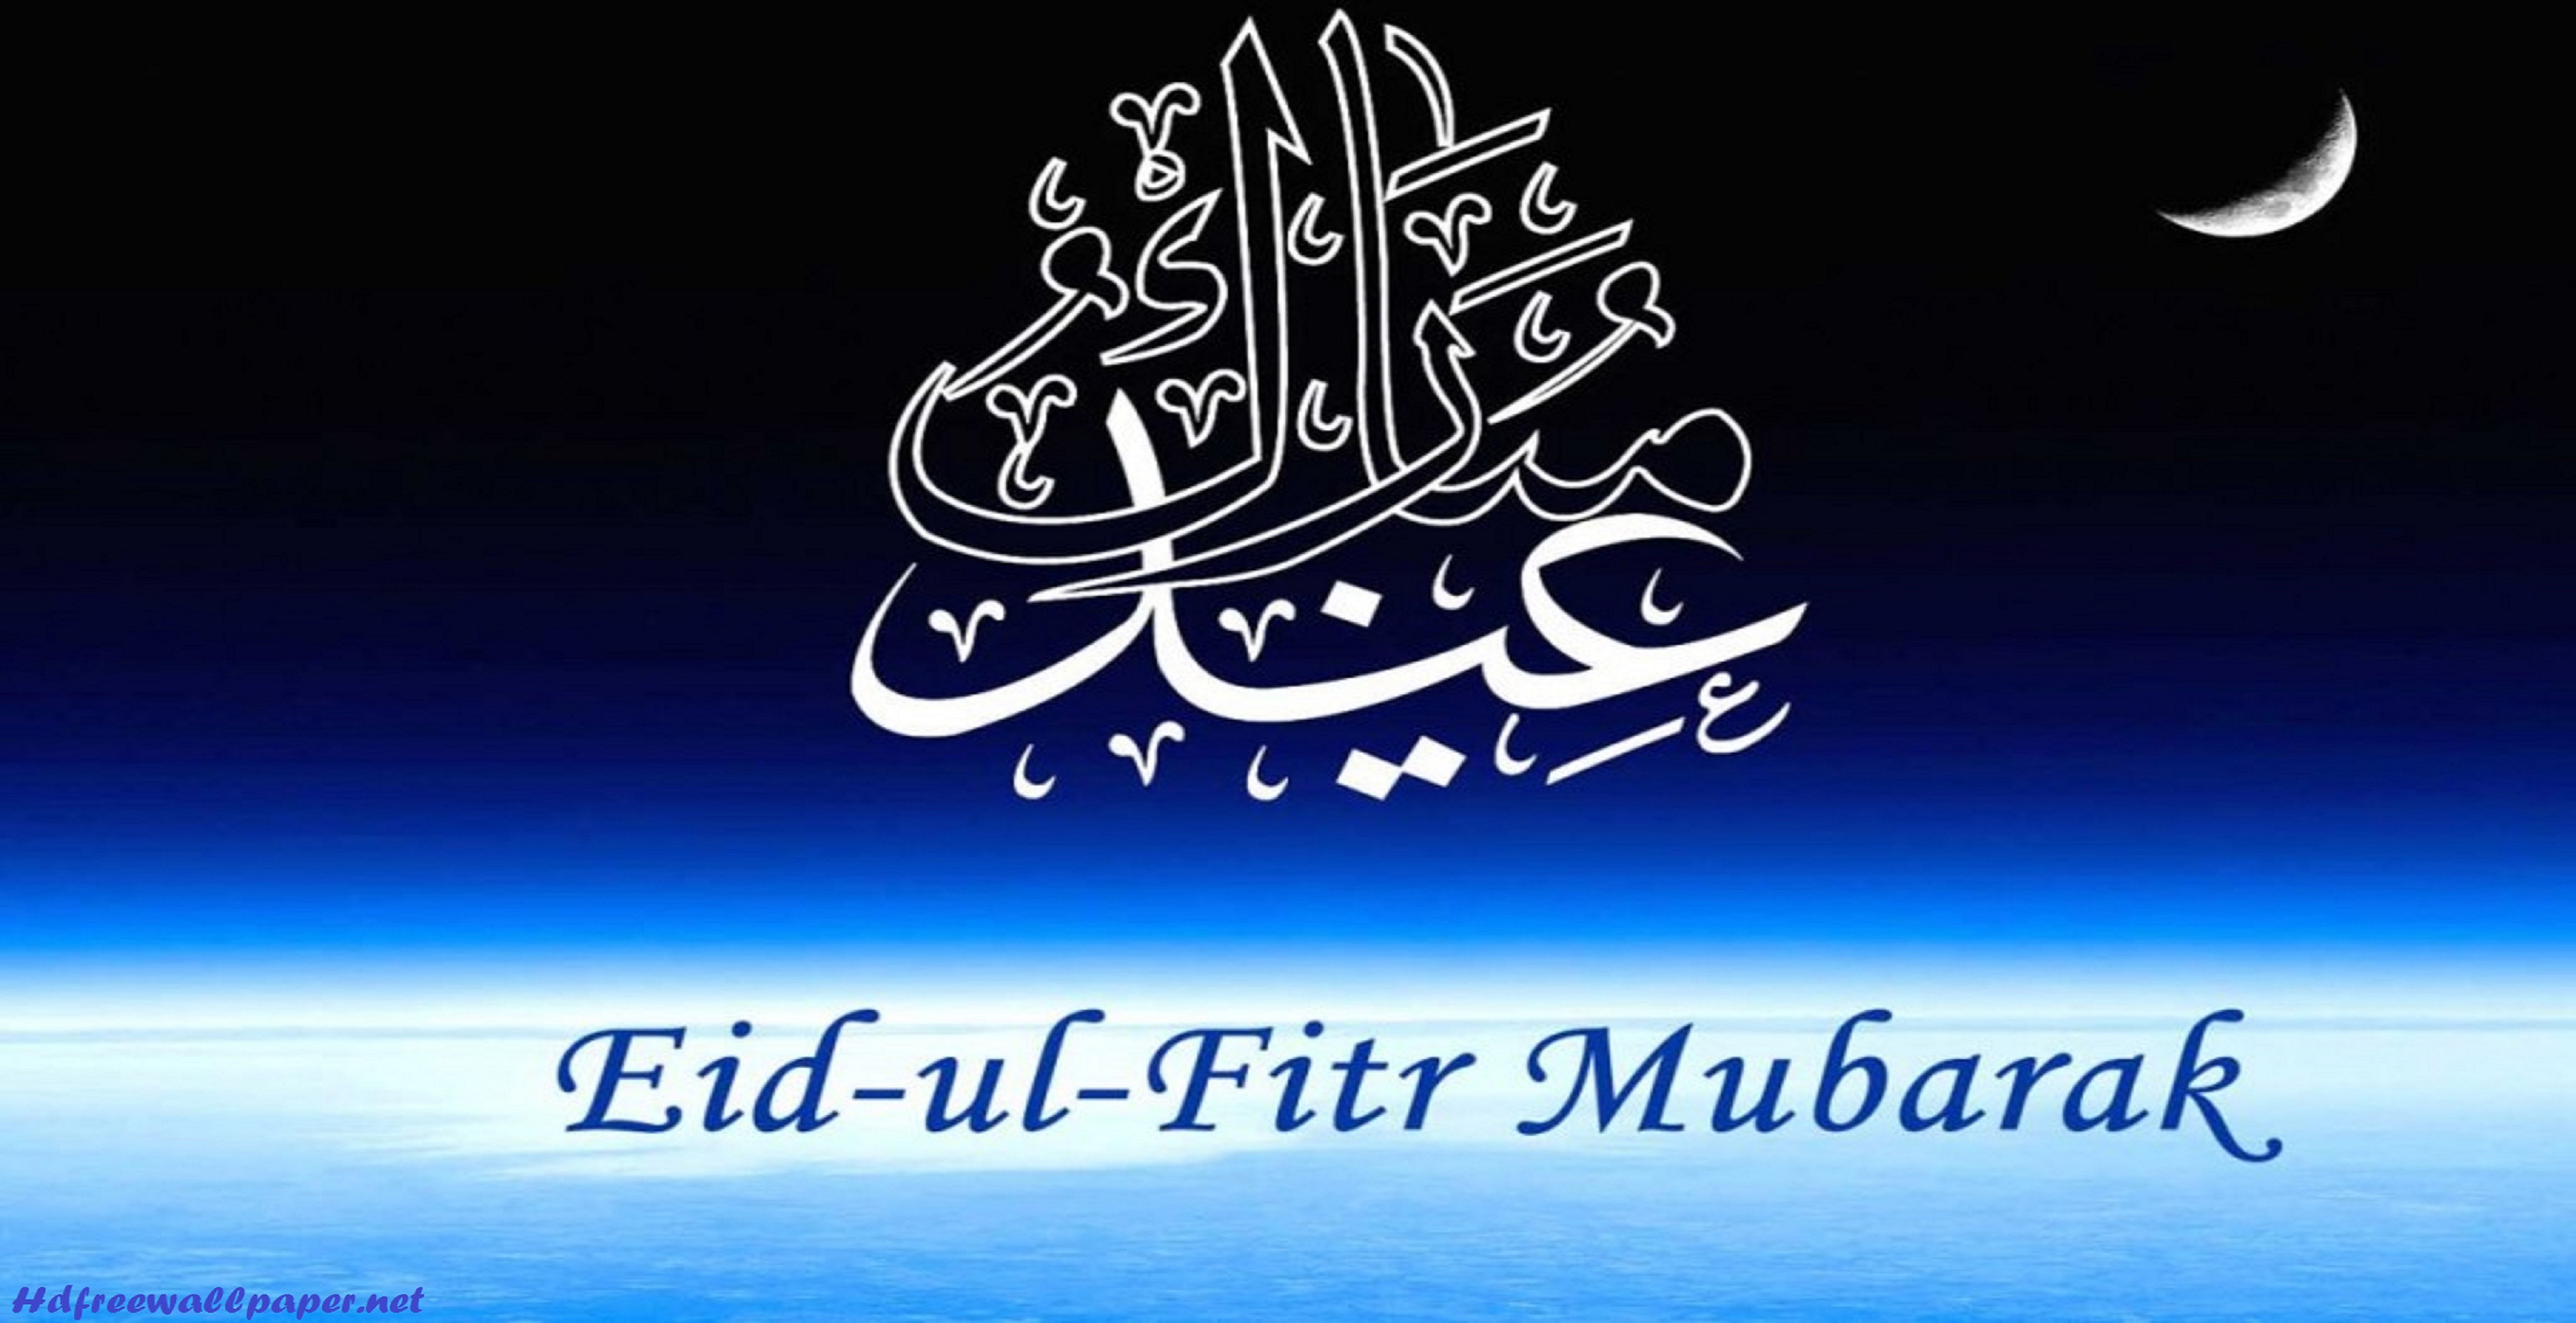 Eid Ul Fitr Mubarak Wallpaper For iPhone PC Mobile Download -